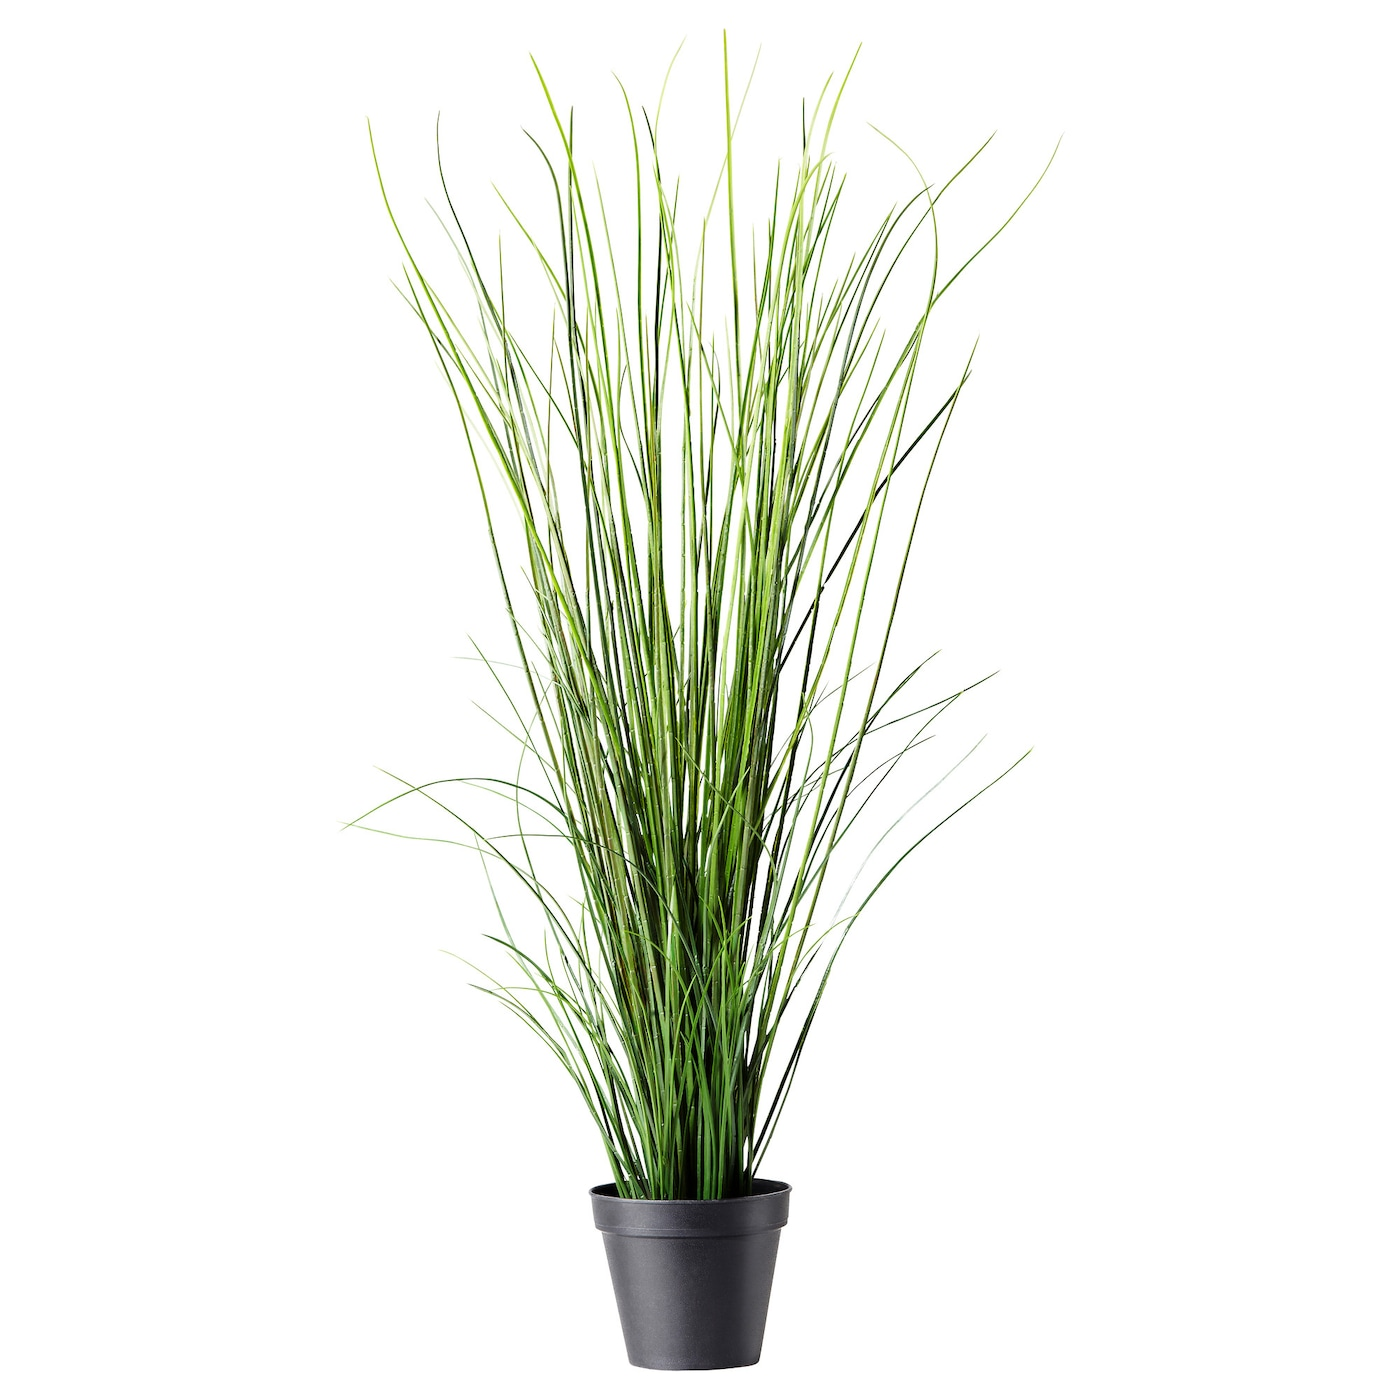 Artificial flowers plants ikea ireland dublin for Long grass in garden